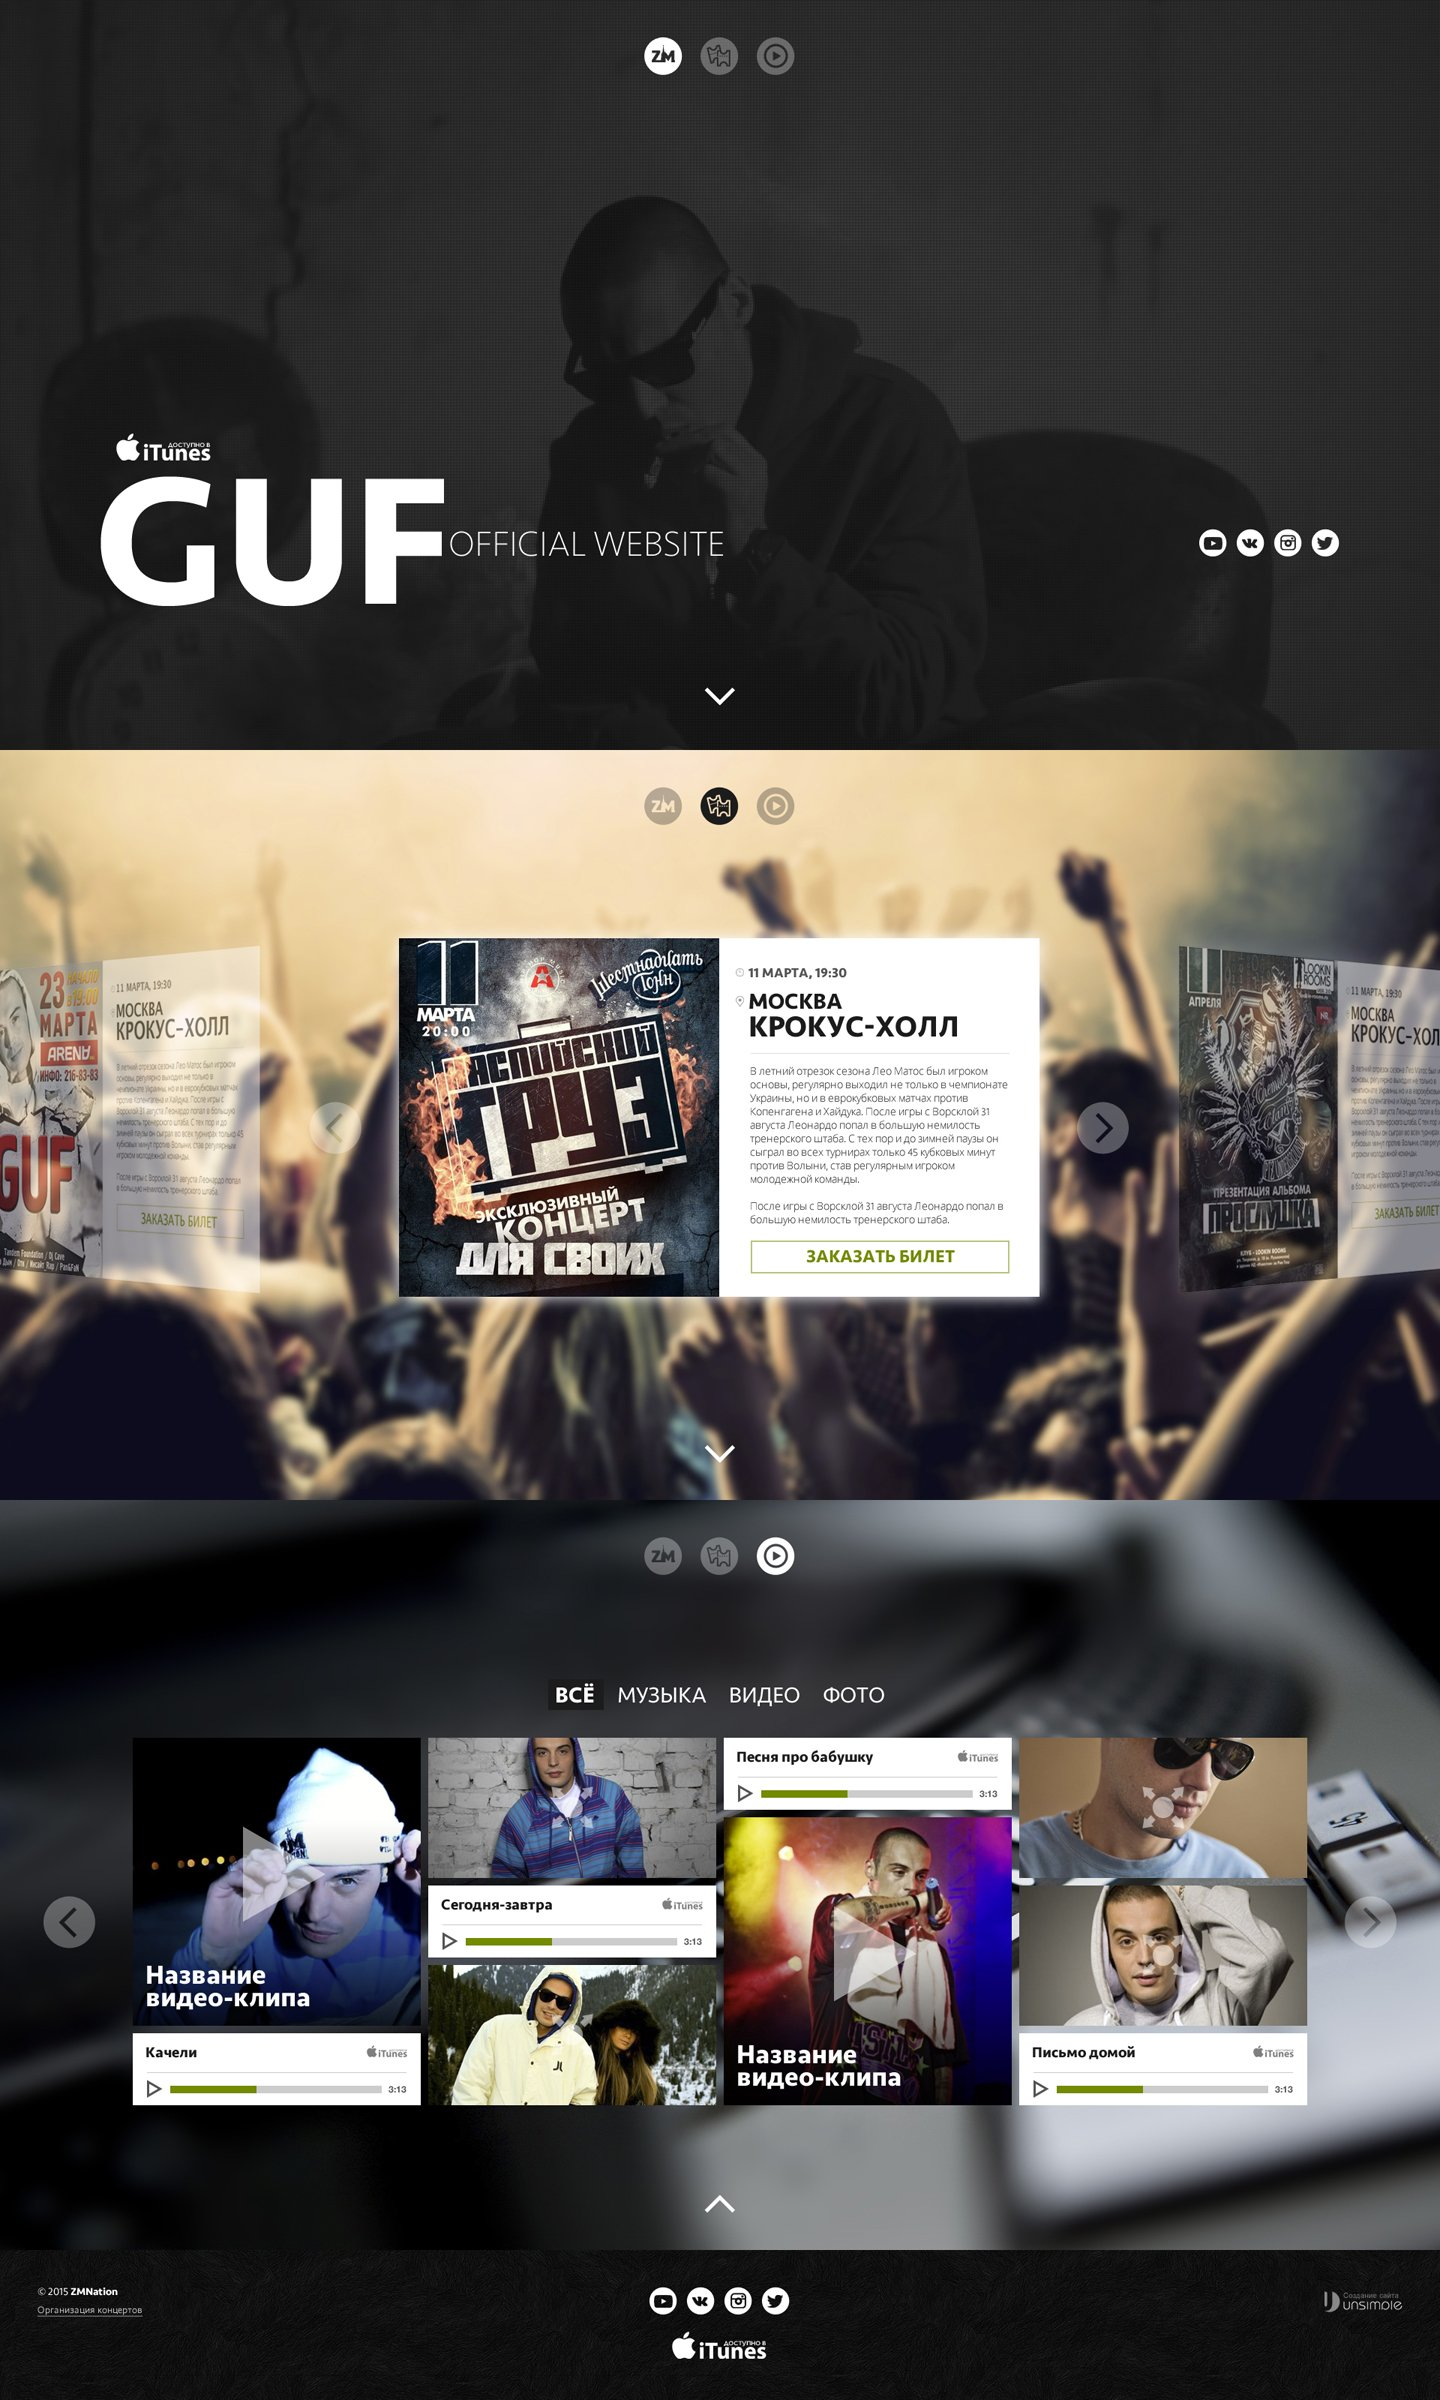 GUF. Website development for the rap artist